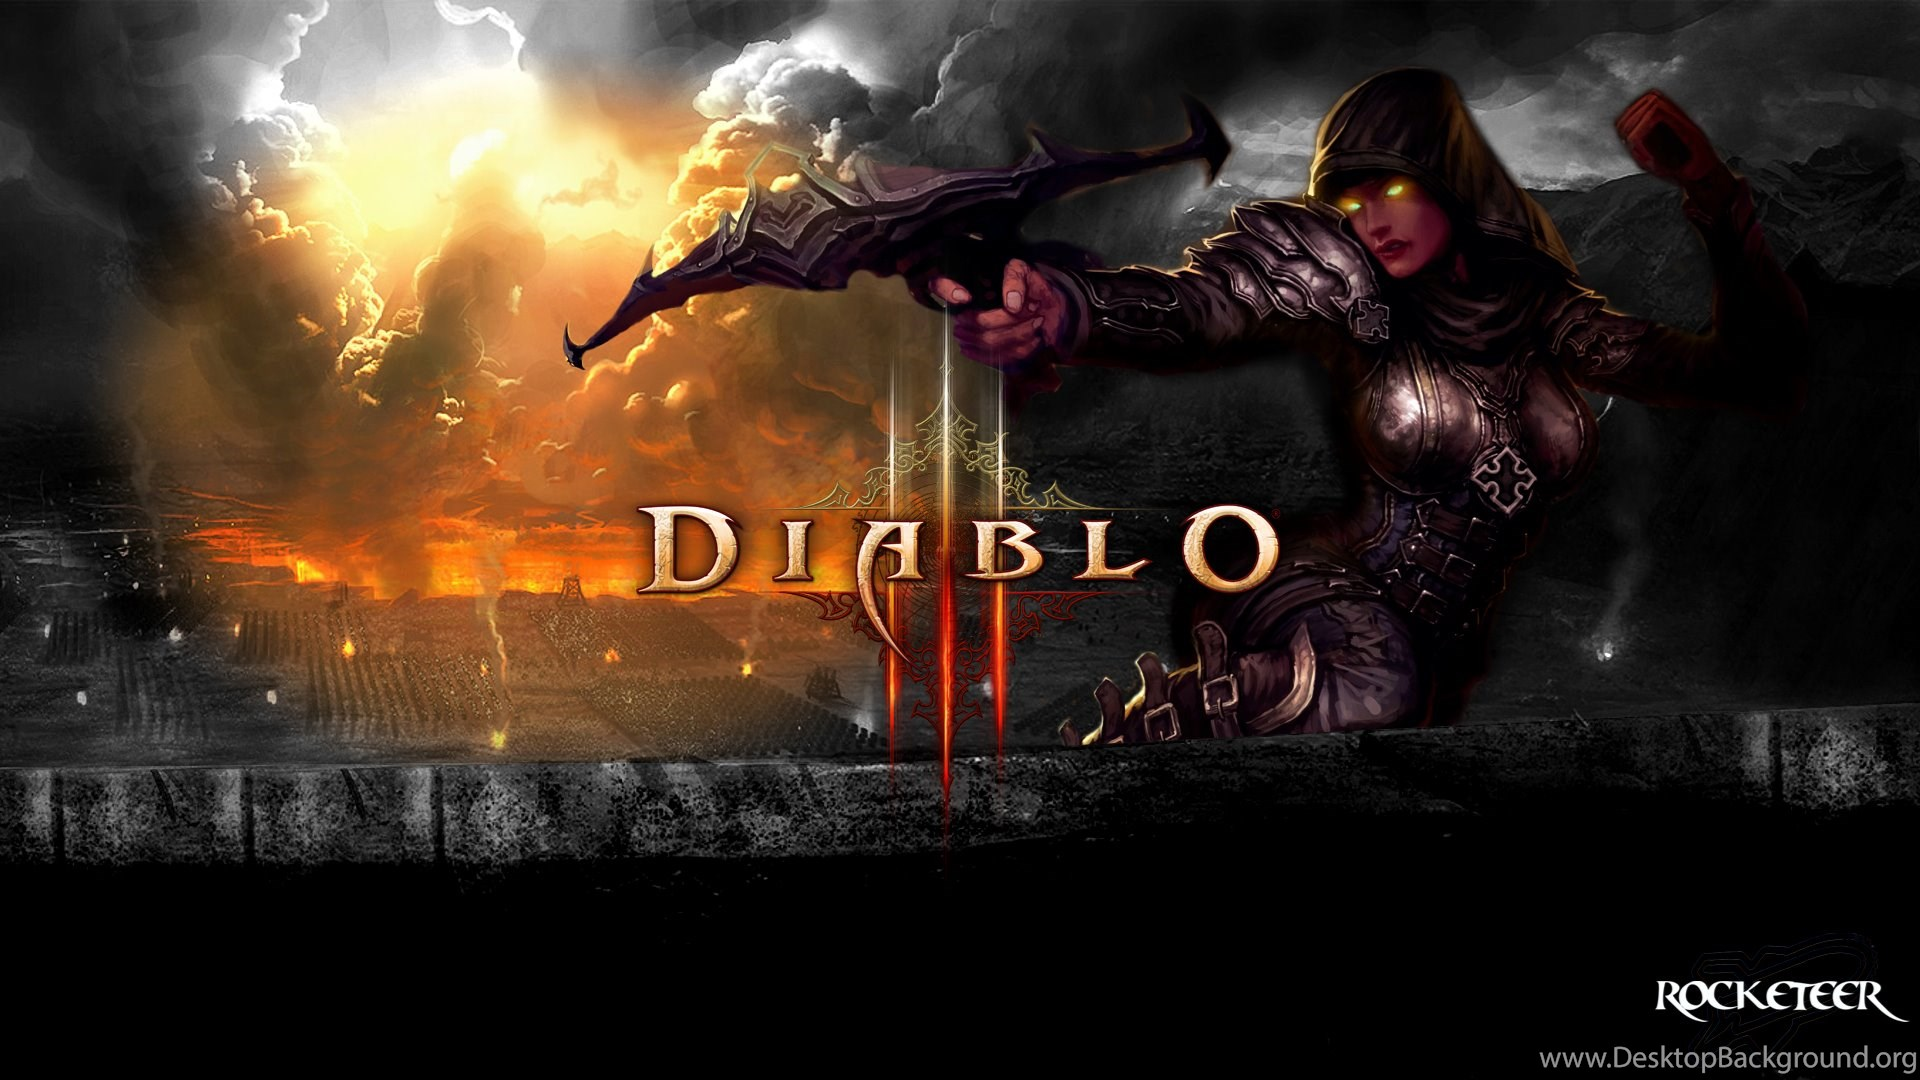 Diablo 3 Wallpapers 1920x1080 Demon Hunter Desktop Background